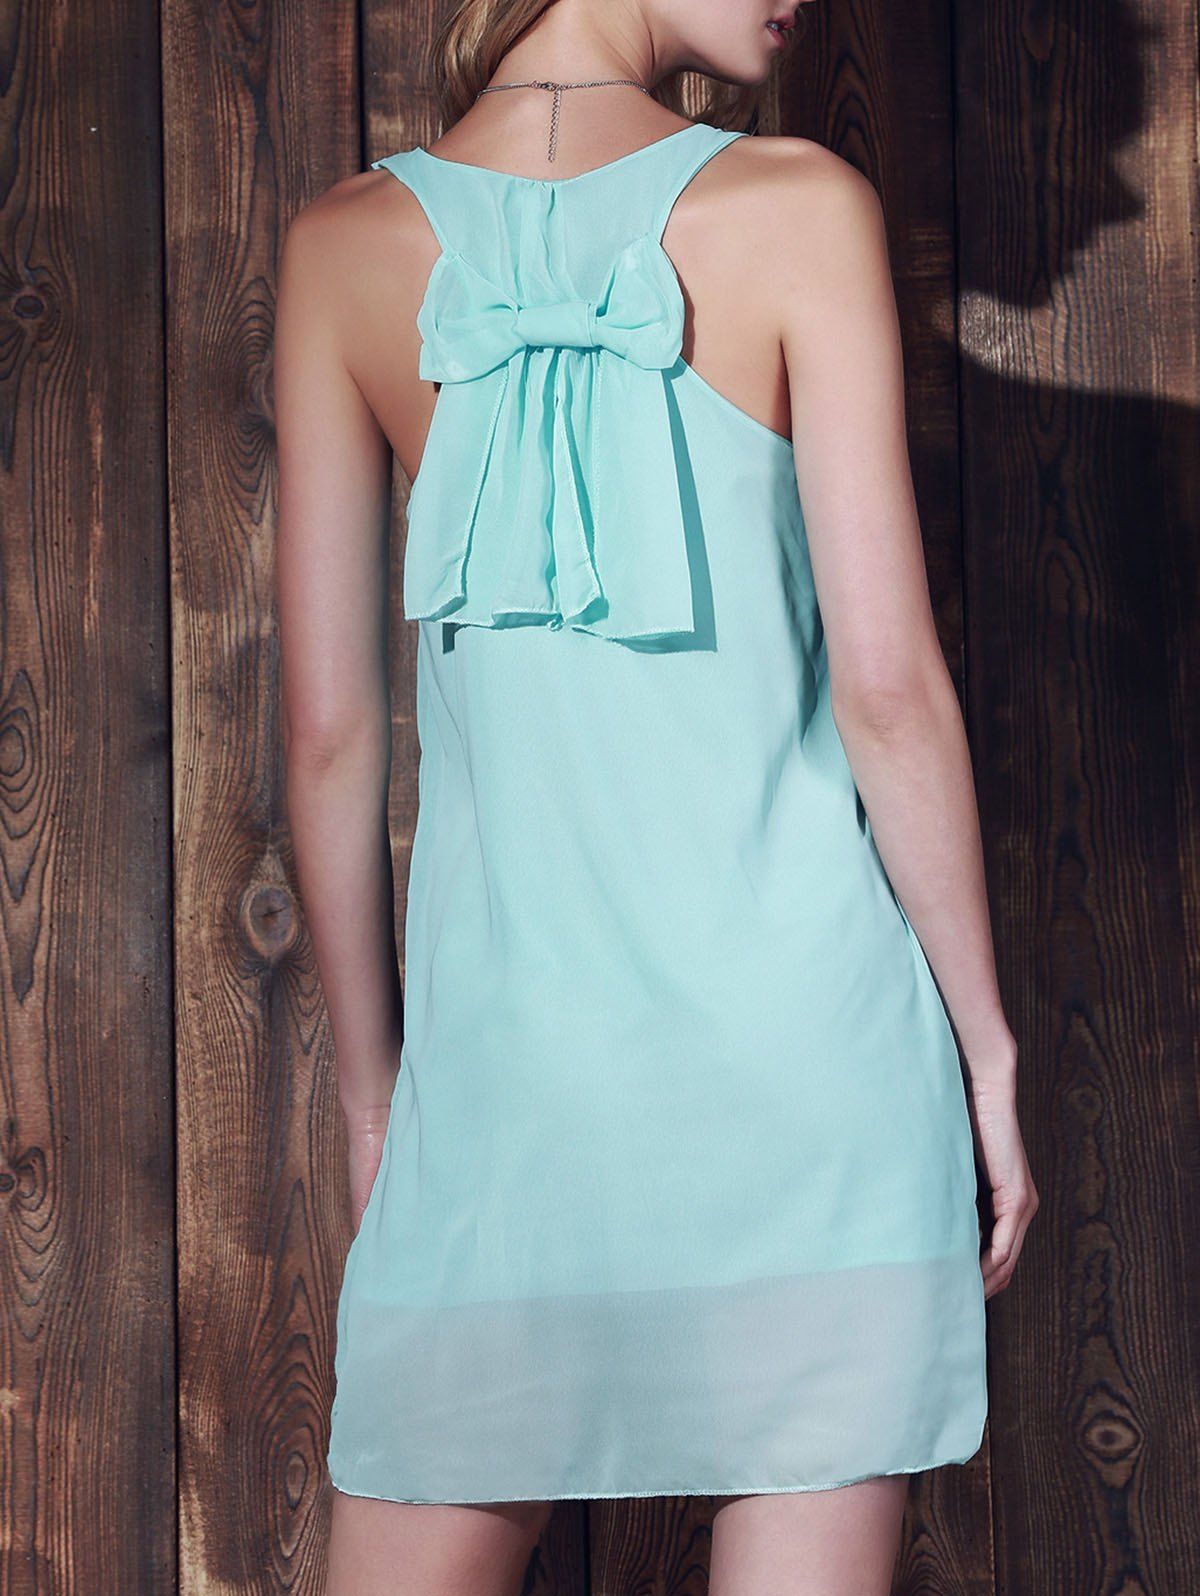 Solid Color Bowknot Embellished Stylish Scoop Neck Sleeveless Dress For Women in Mint Green | Sammydress.com